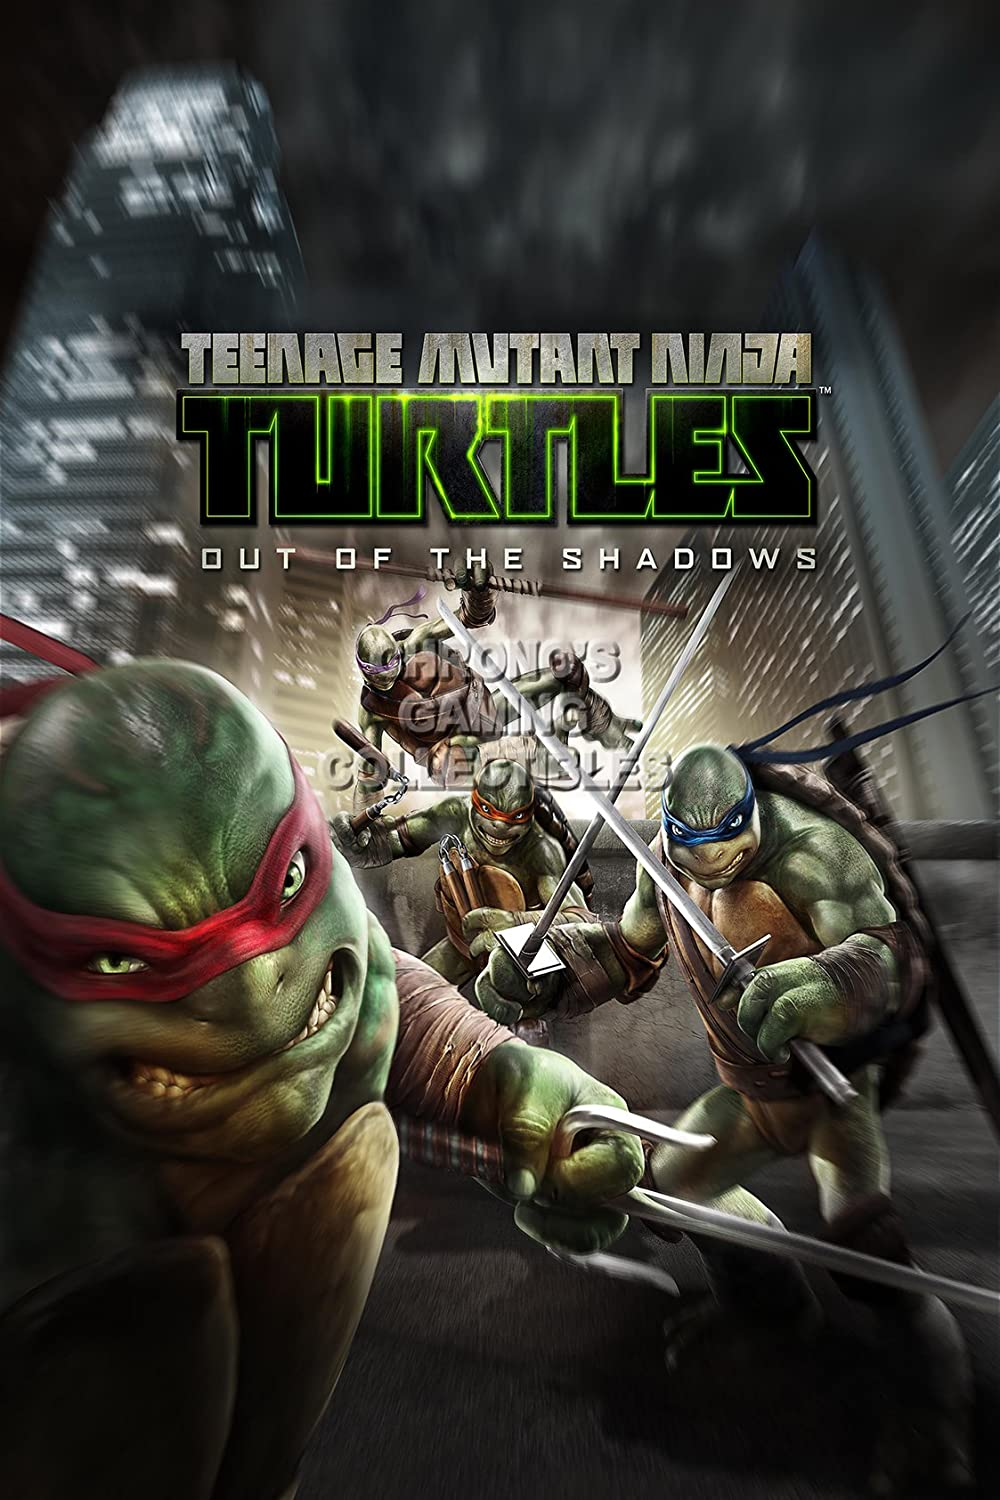 Amazon.com: CGC Huge Poster - Teenage Mutant Ninja Turtles ...